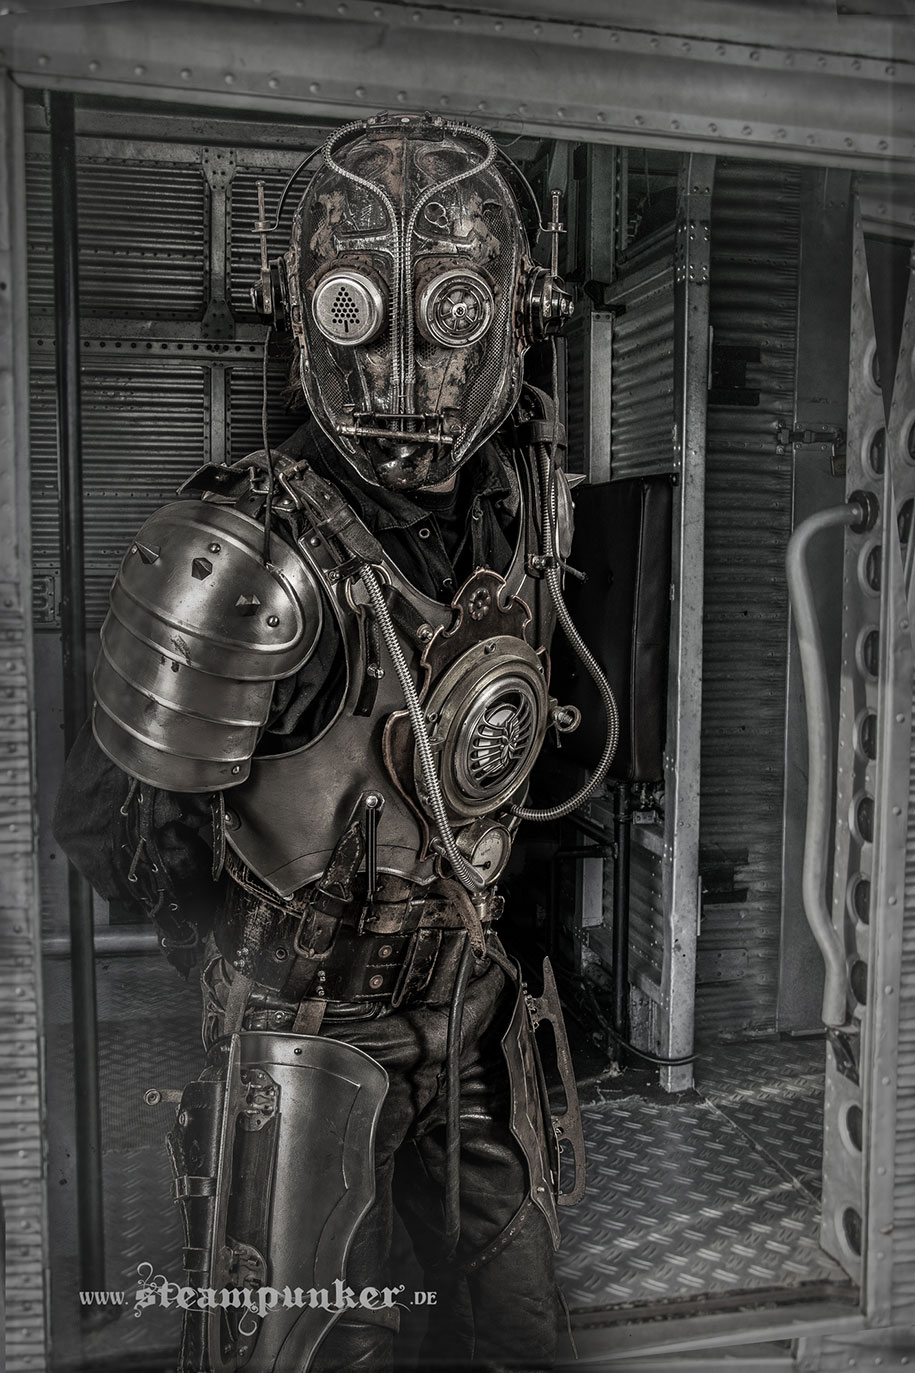 cosplay-costumes-steampunk-art-armor-clothing-alexander-schlesier-1